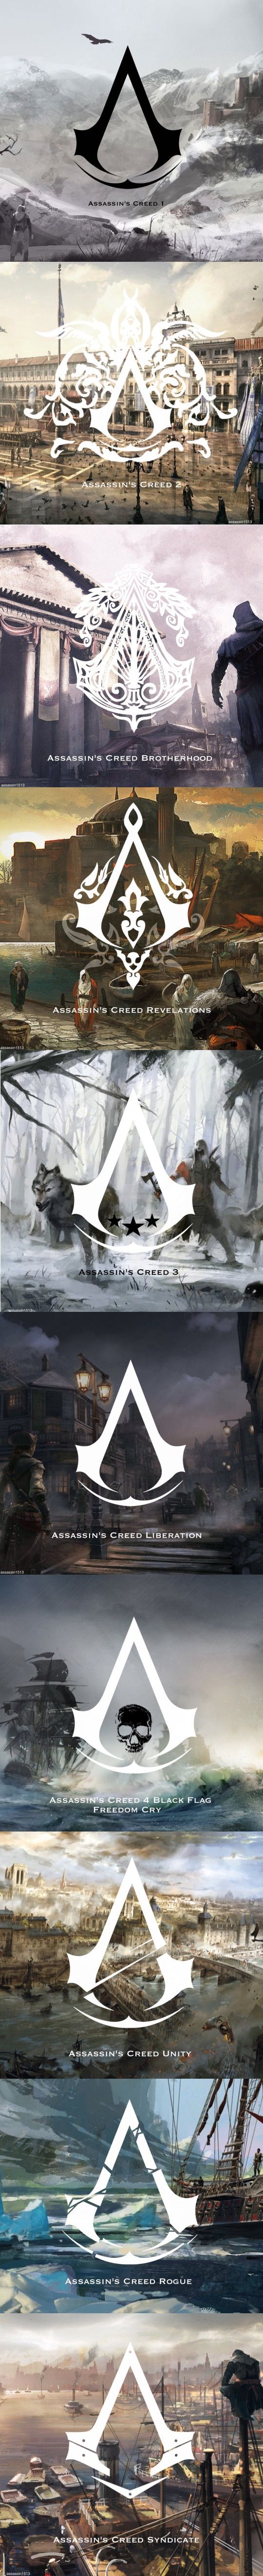 Assassins Creed Games and their respective symbols. I love the revelations design and want to get a tattoo of it:)